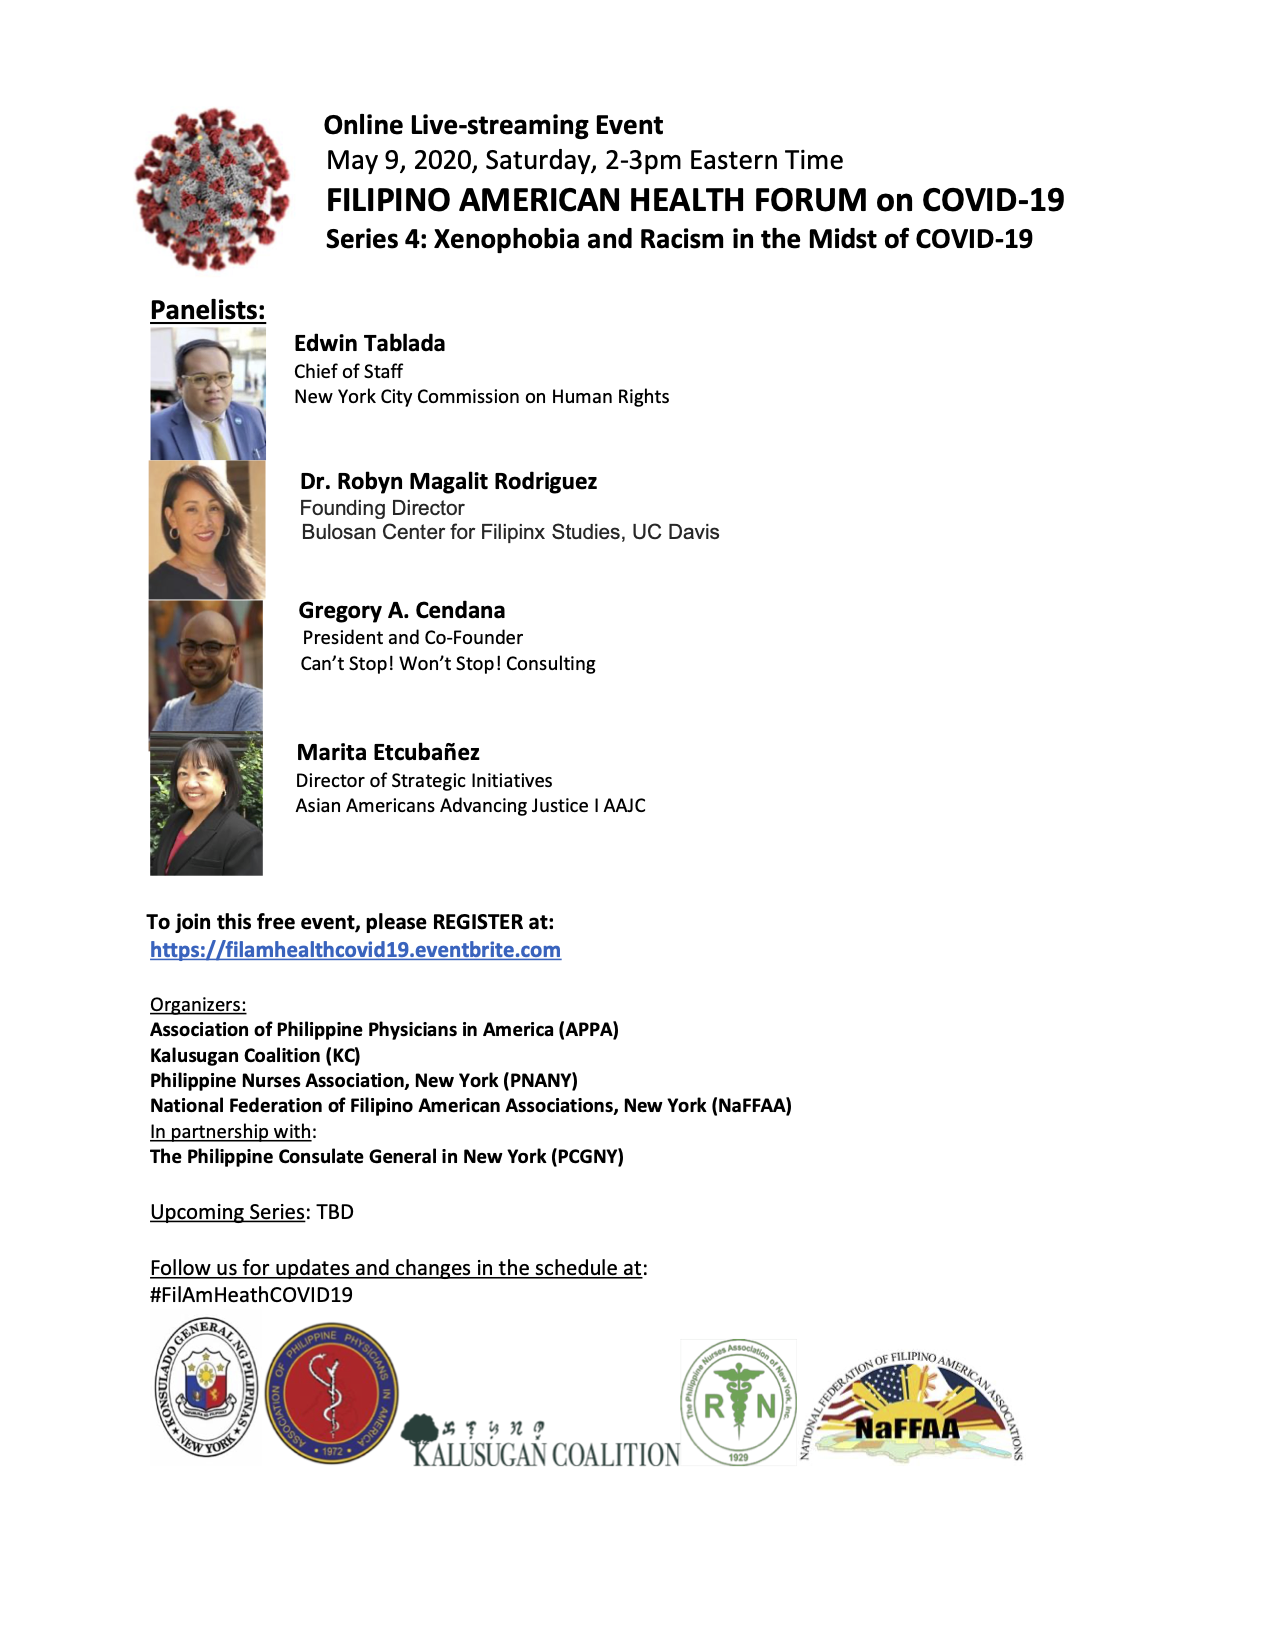 Virtual Filipino American Health Forum on Covid-19 Series 4: Xenophobia and Racism in the Midst of COVID-19